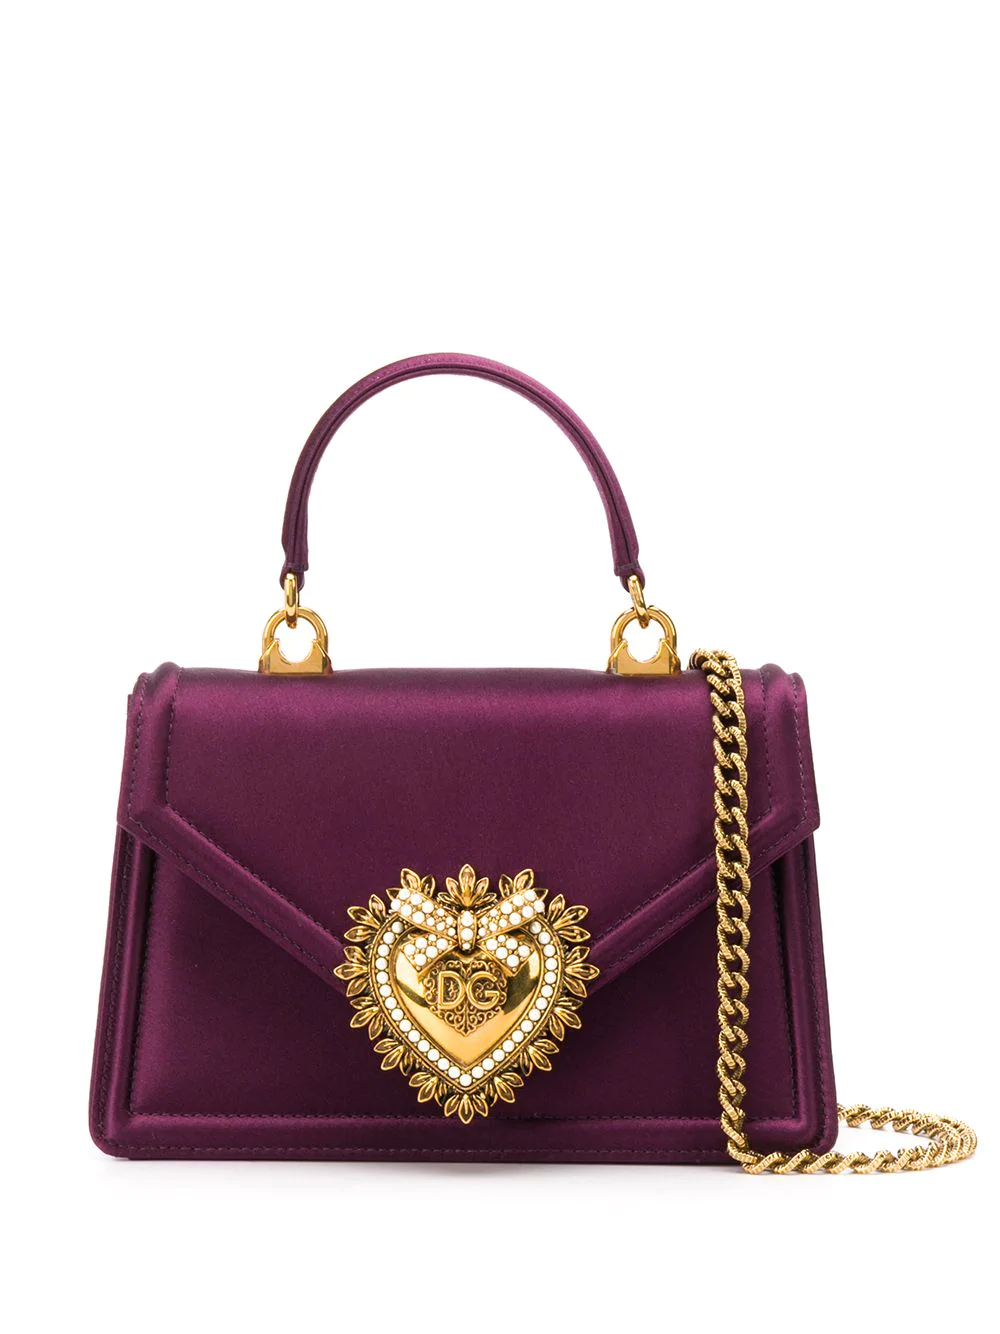 Dolce Gabbana Dg Amore Mini Bag Farfetch In 2020 Purple Bags